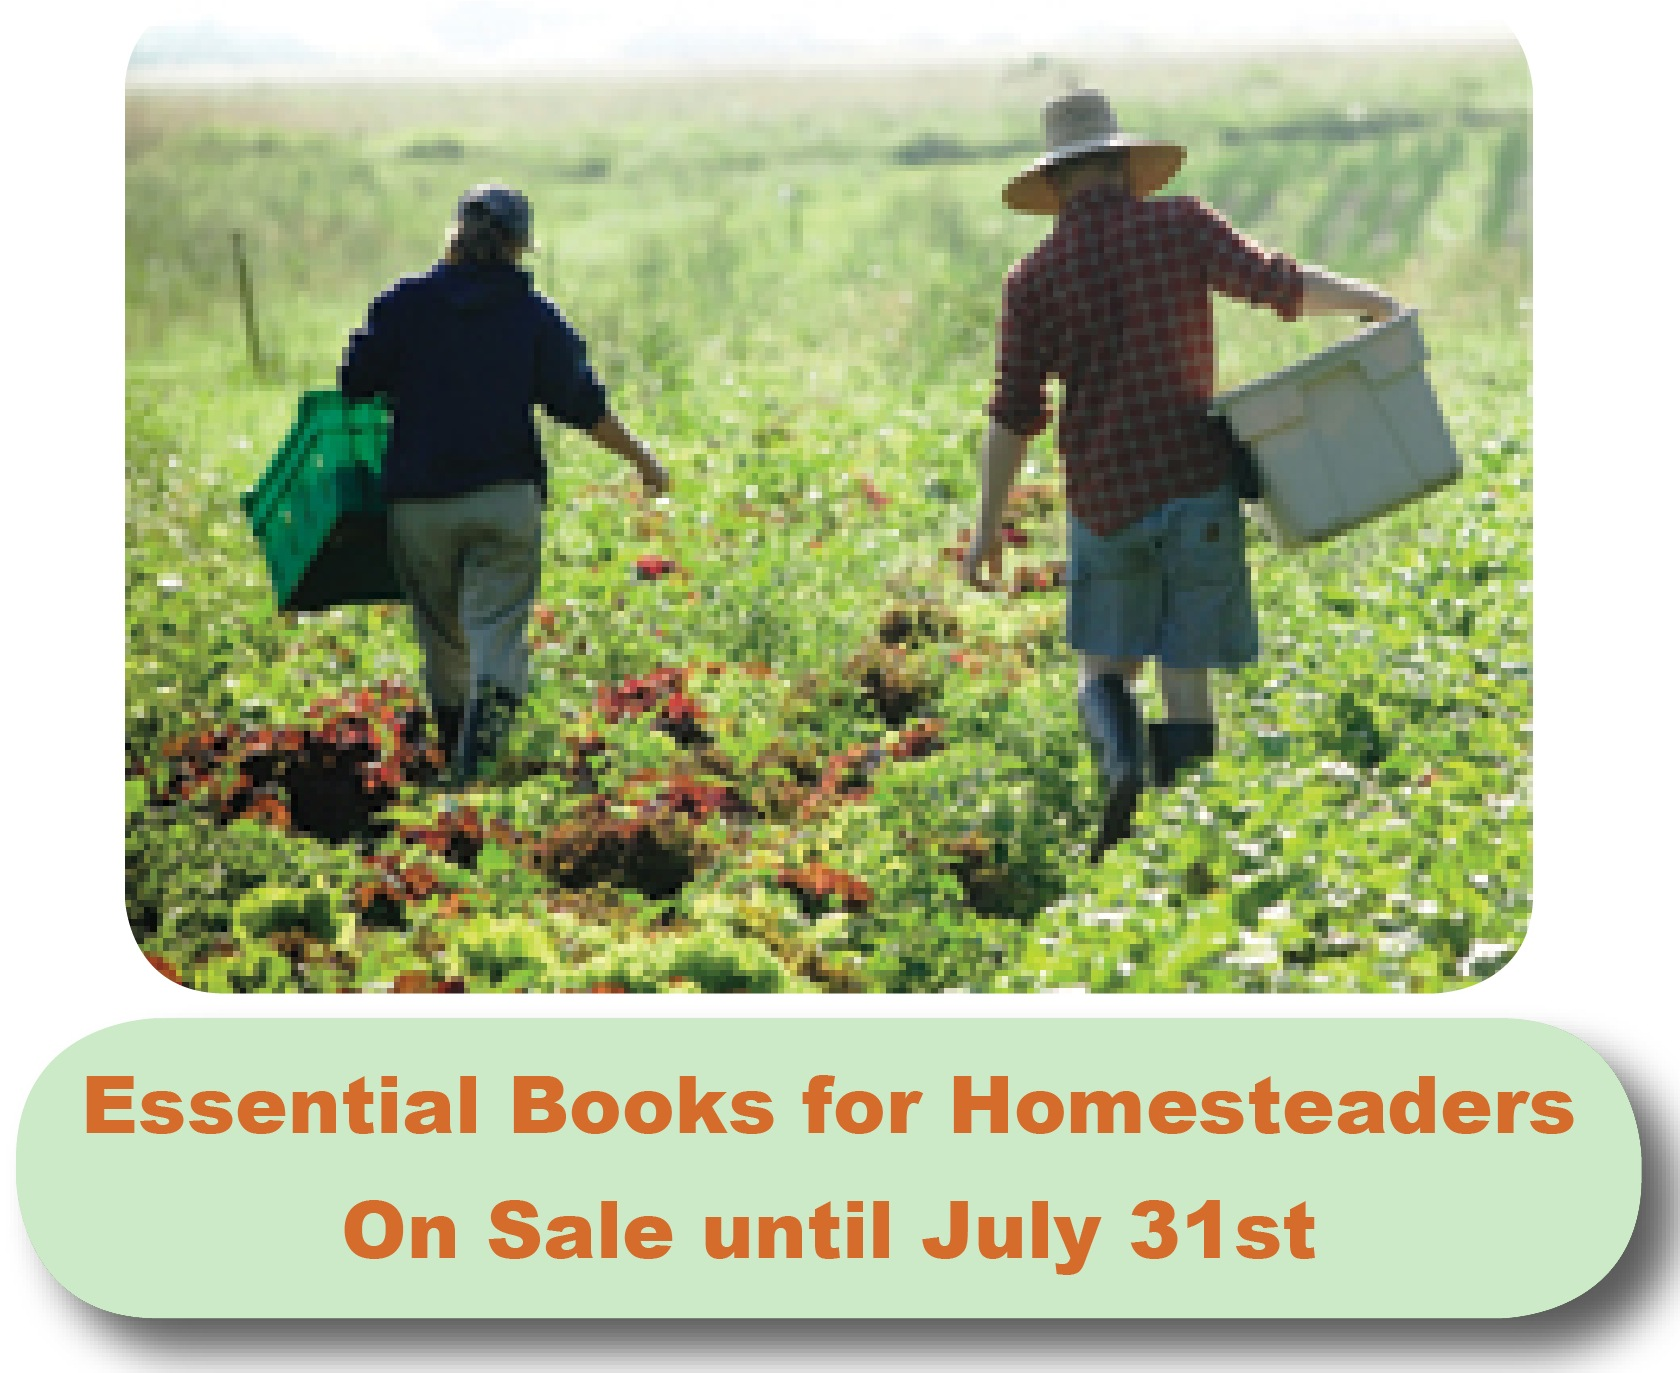 25% off Essential Books for Homesteaders